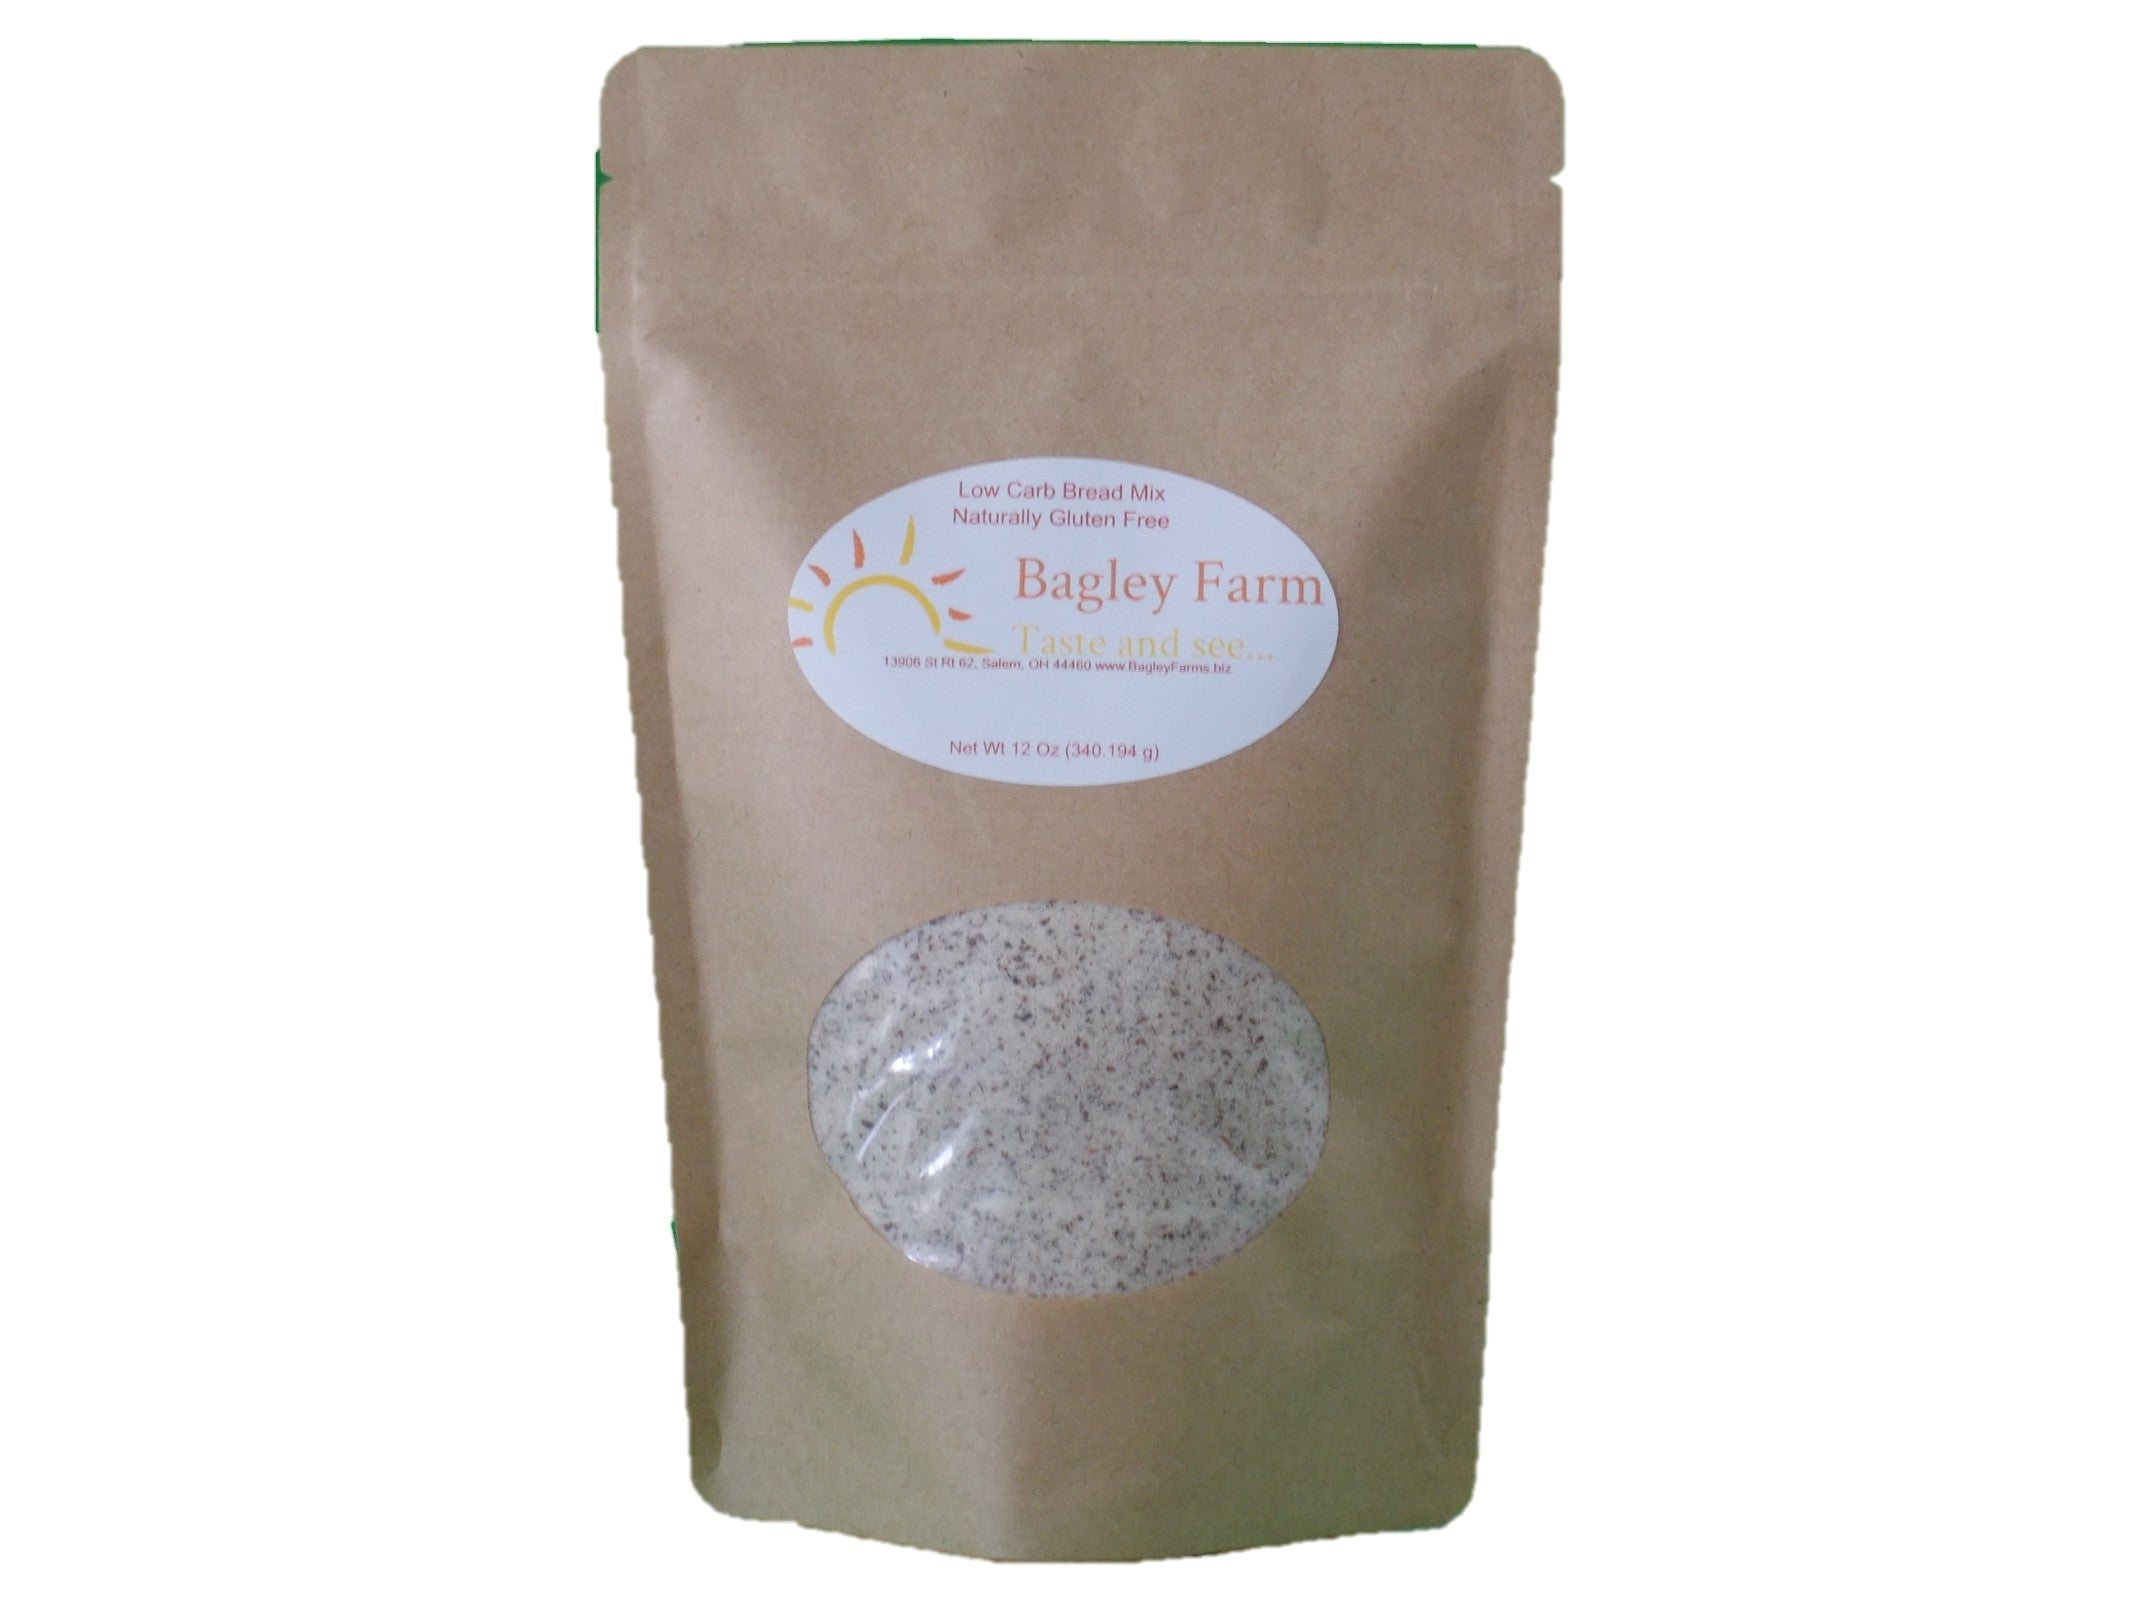 Bagley Farm's Low Carb Gluten Free Bread Mix